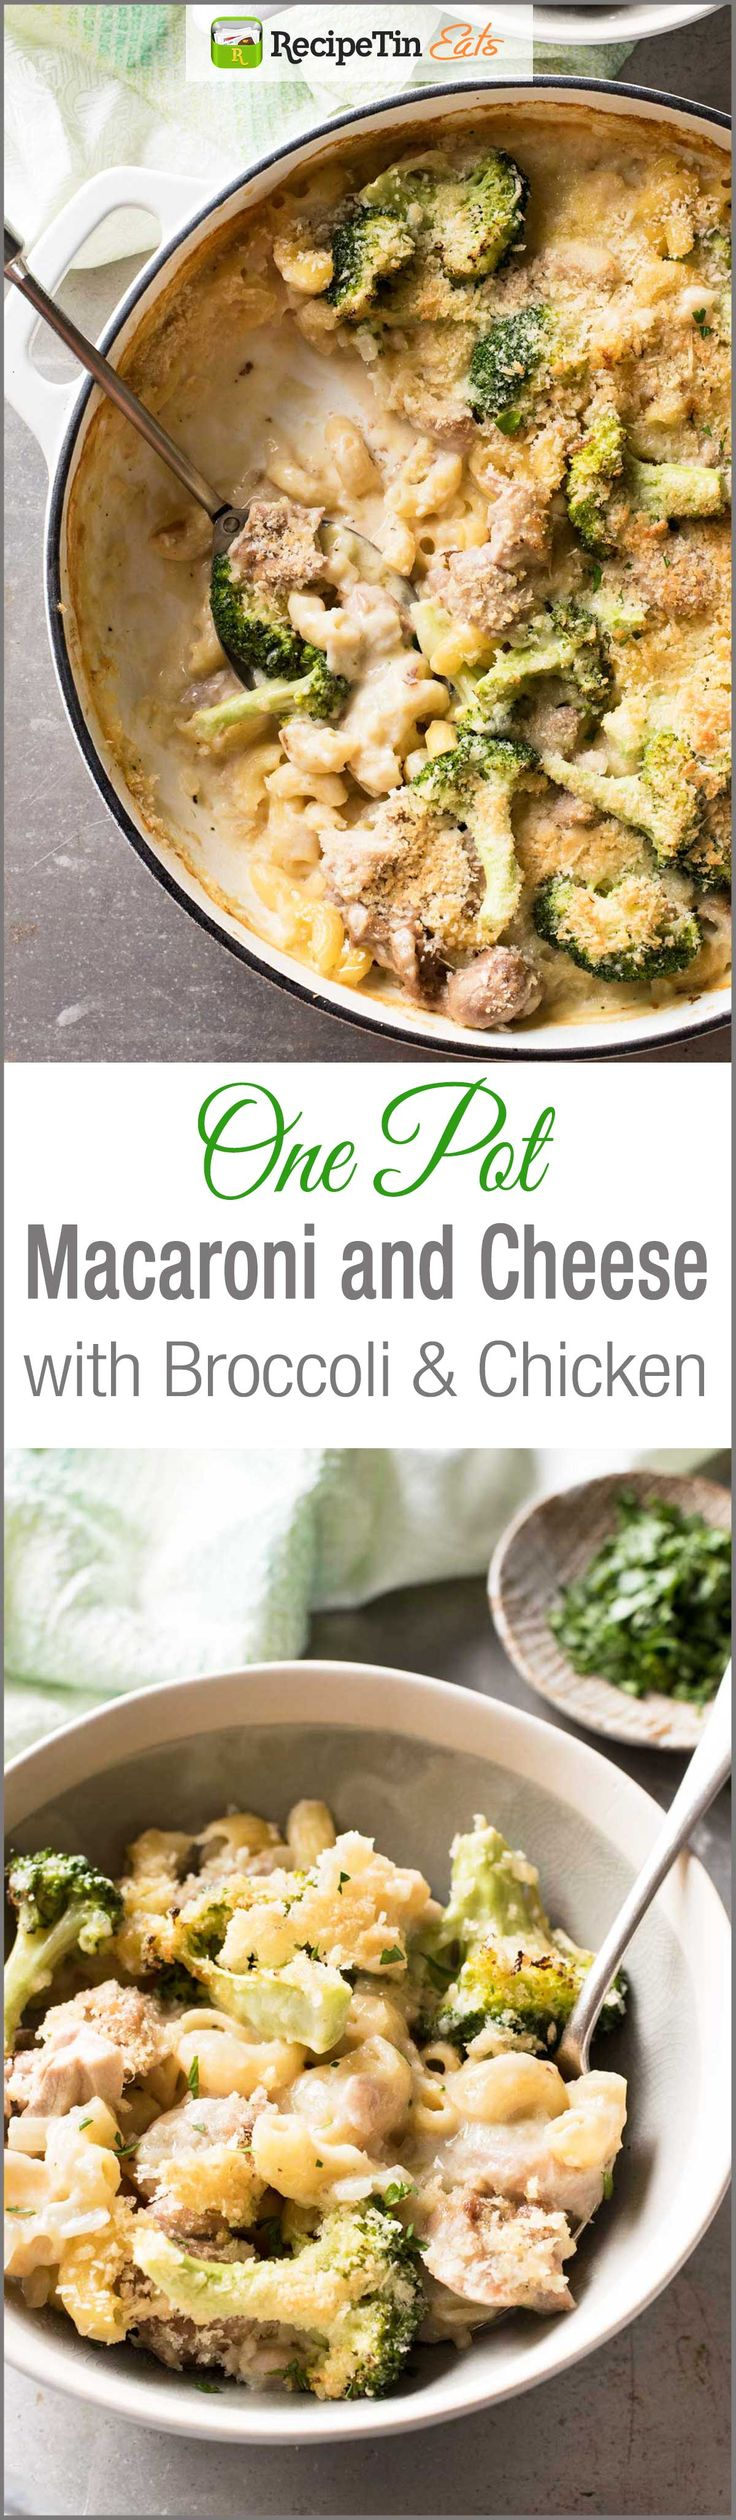 Baked Macaroni and Cheese with Chicken & Broccoli - Made in one pot, cheesy and creamy but made without a drop of cream!